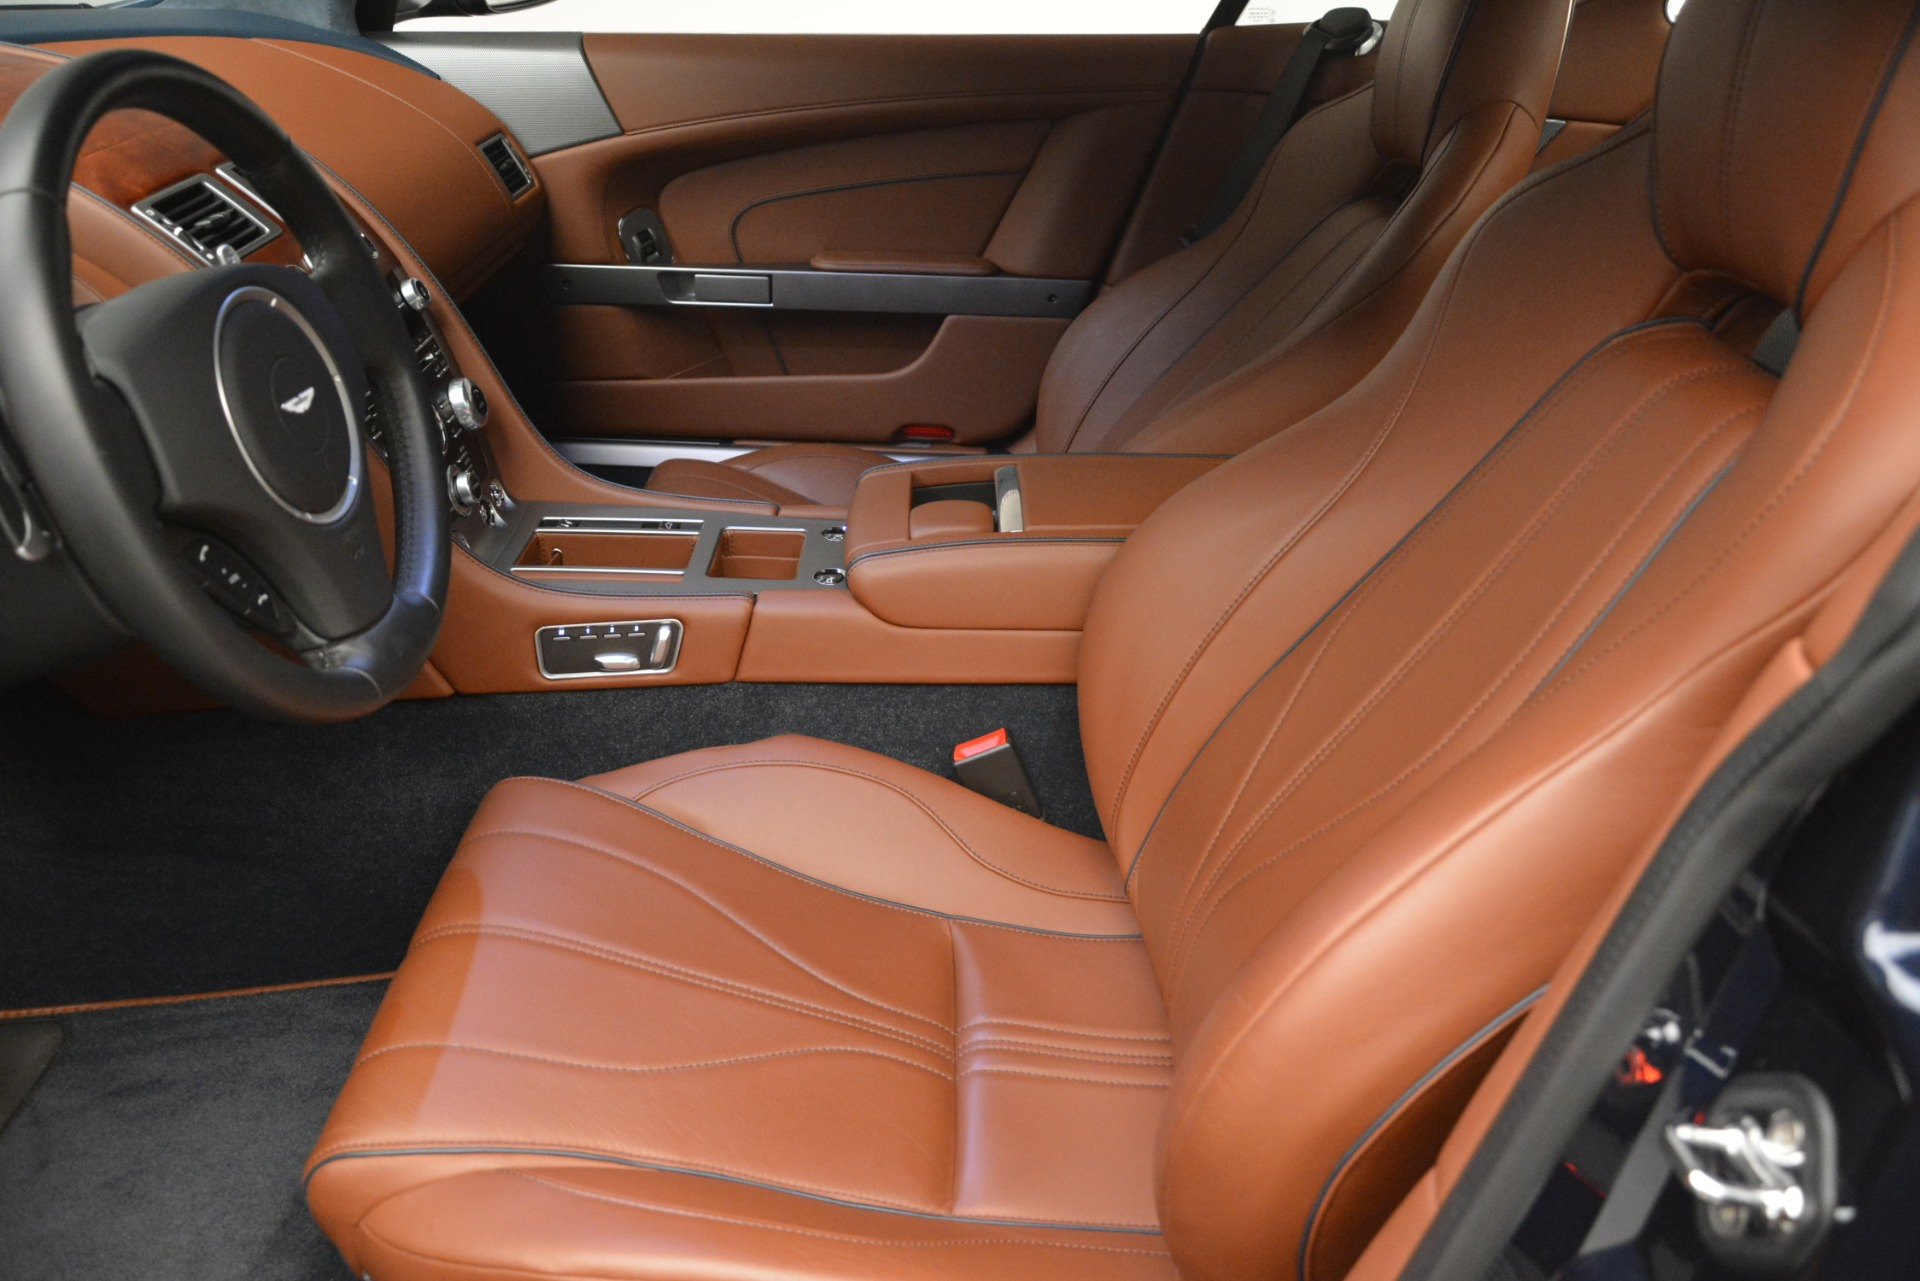 Used 2014 Aston Martin DB9 Coupe For Sale In Westport, CT 3010_p15